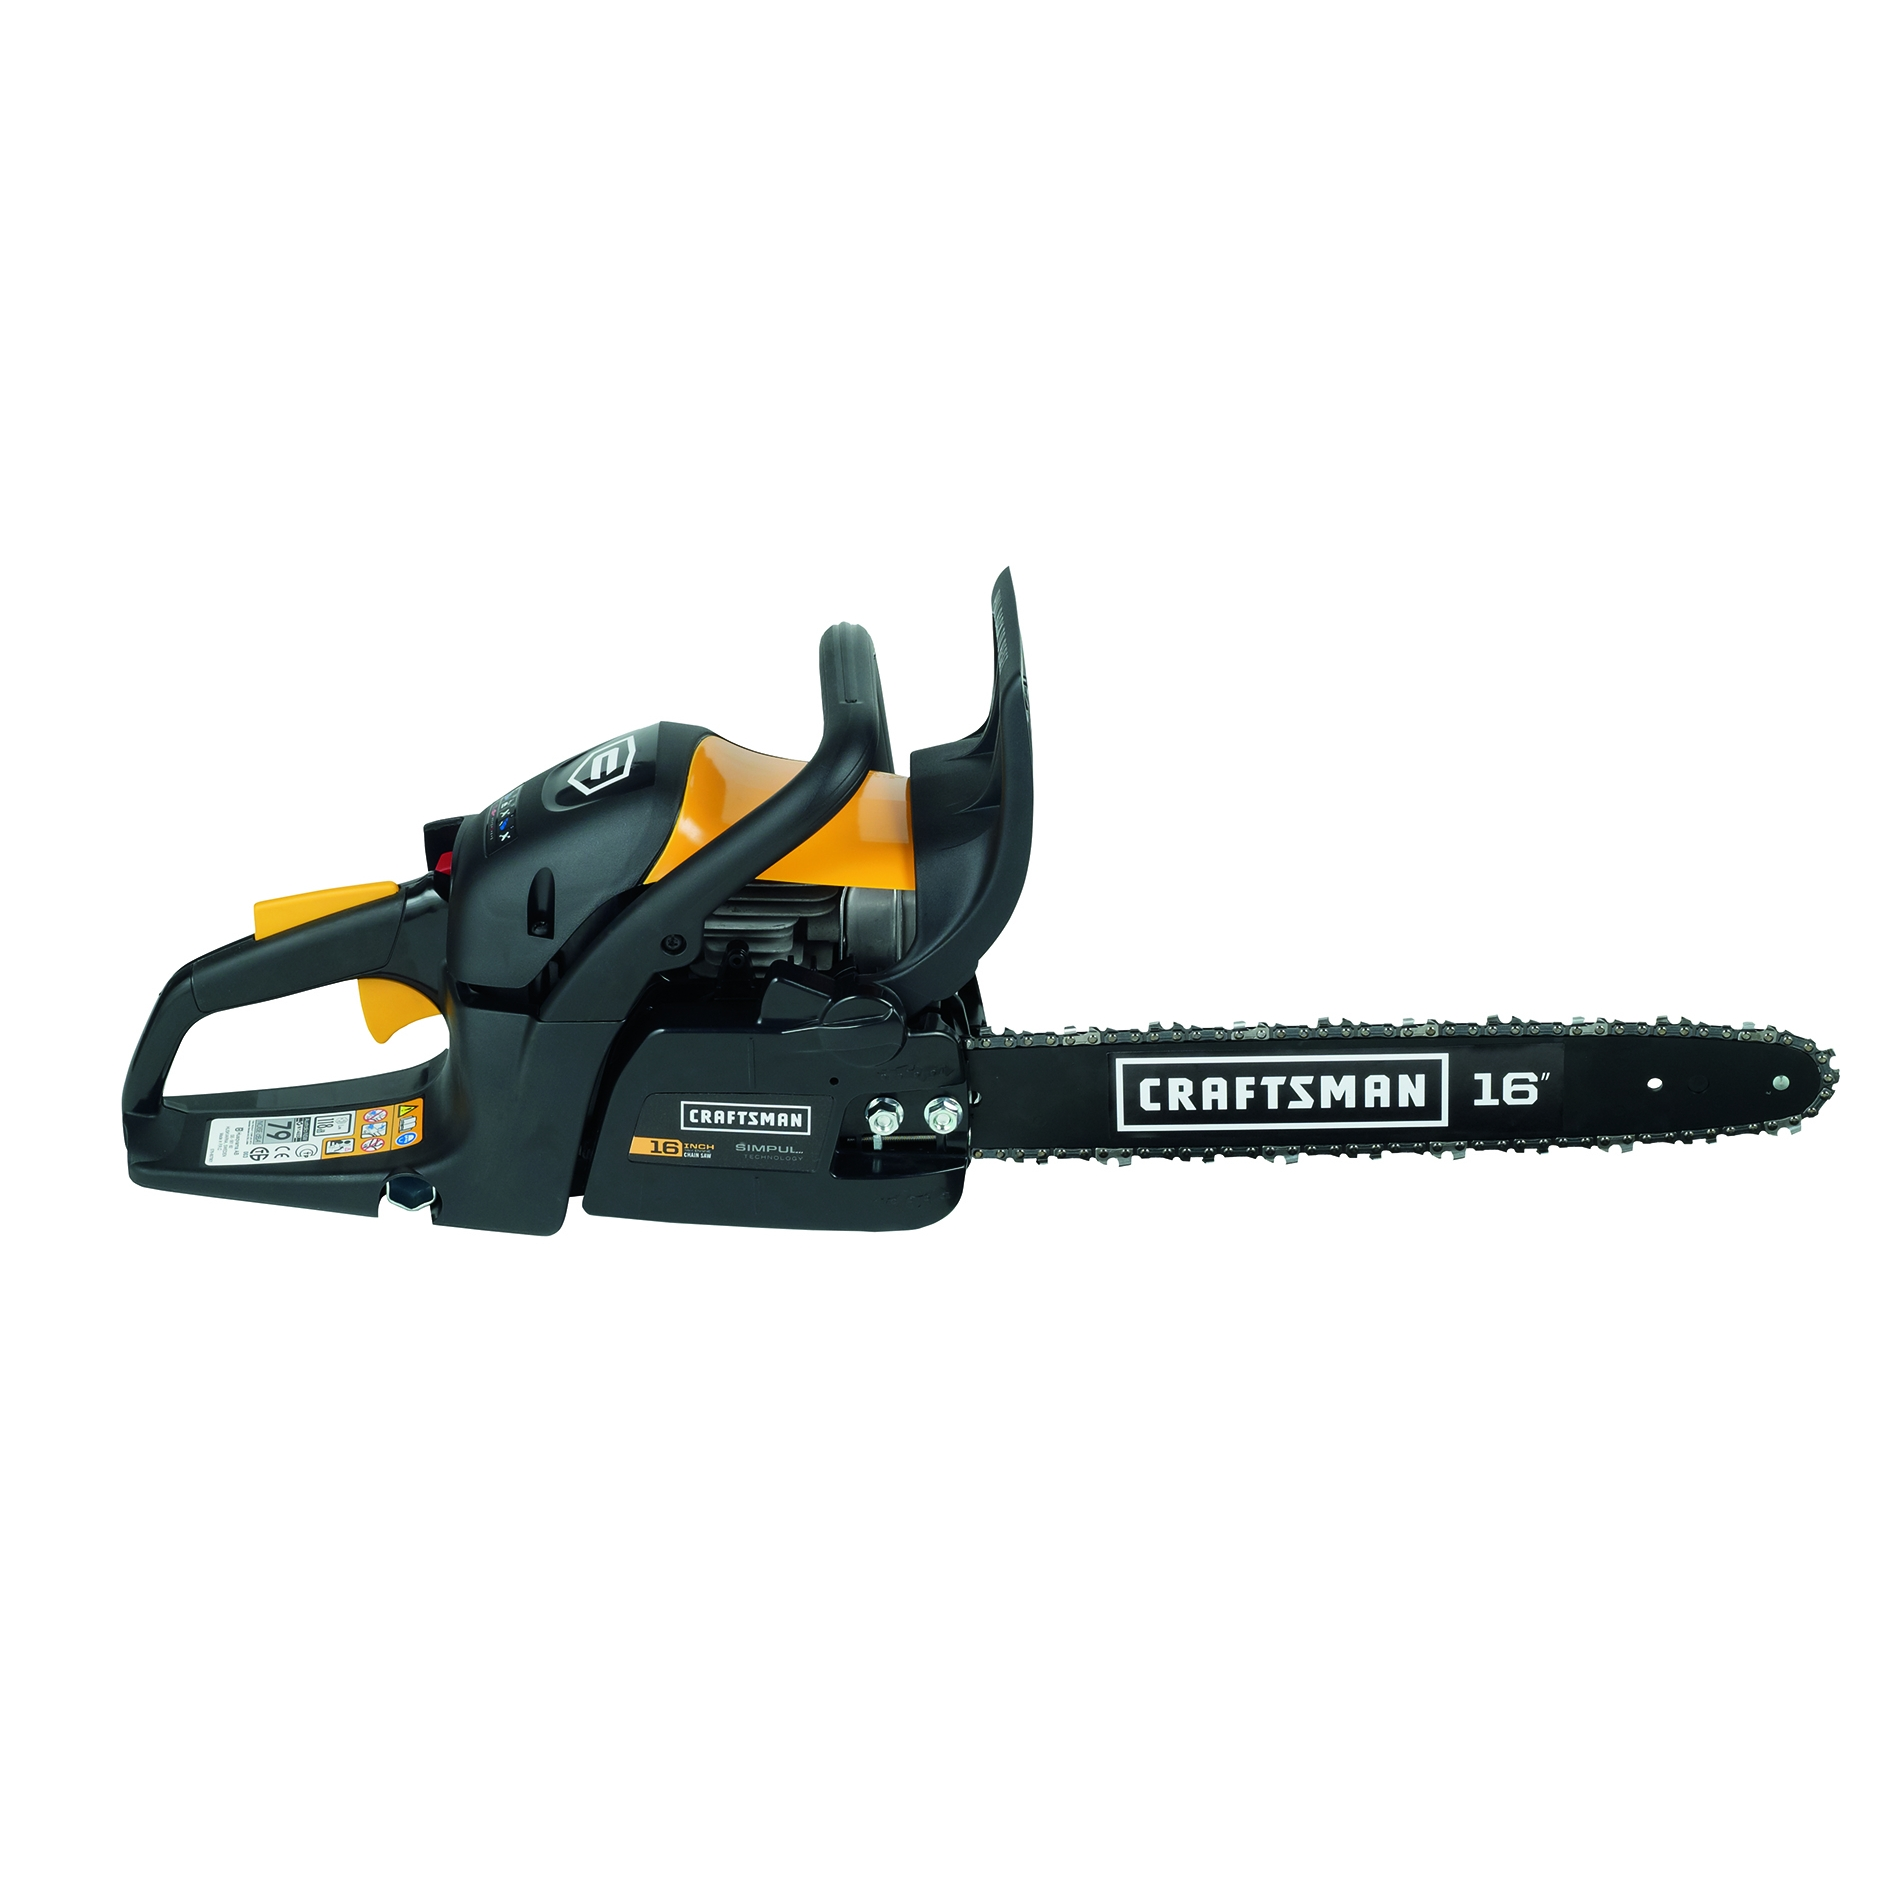 "Craftsman Pro Series 38cc 2-Cycle 16"" Gas Chainsaw"